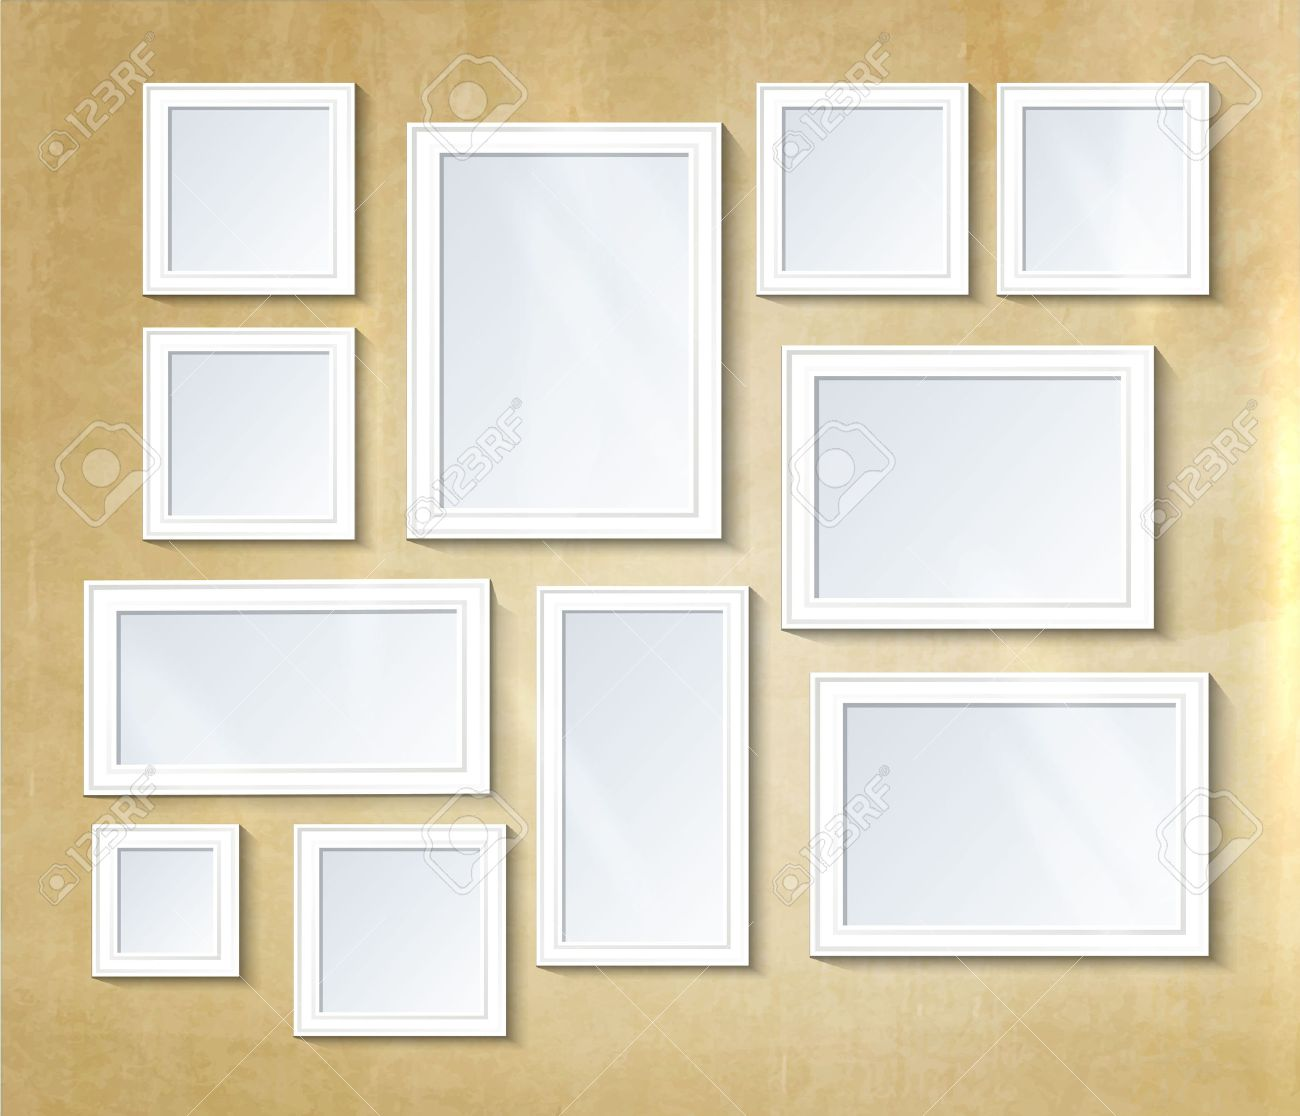 Decorative collage photo frame. Vintage photo frame template on wall for kid and parents. Design photo memories, scrapbook concept, vector illustration. Gallery - 58323761